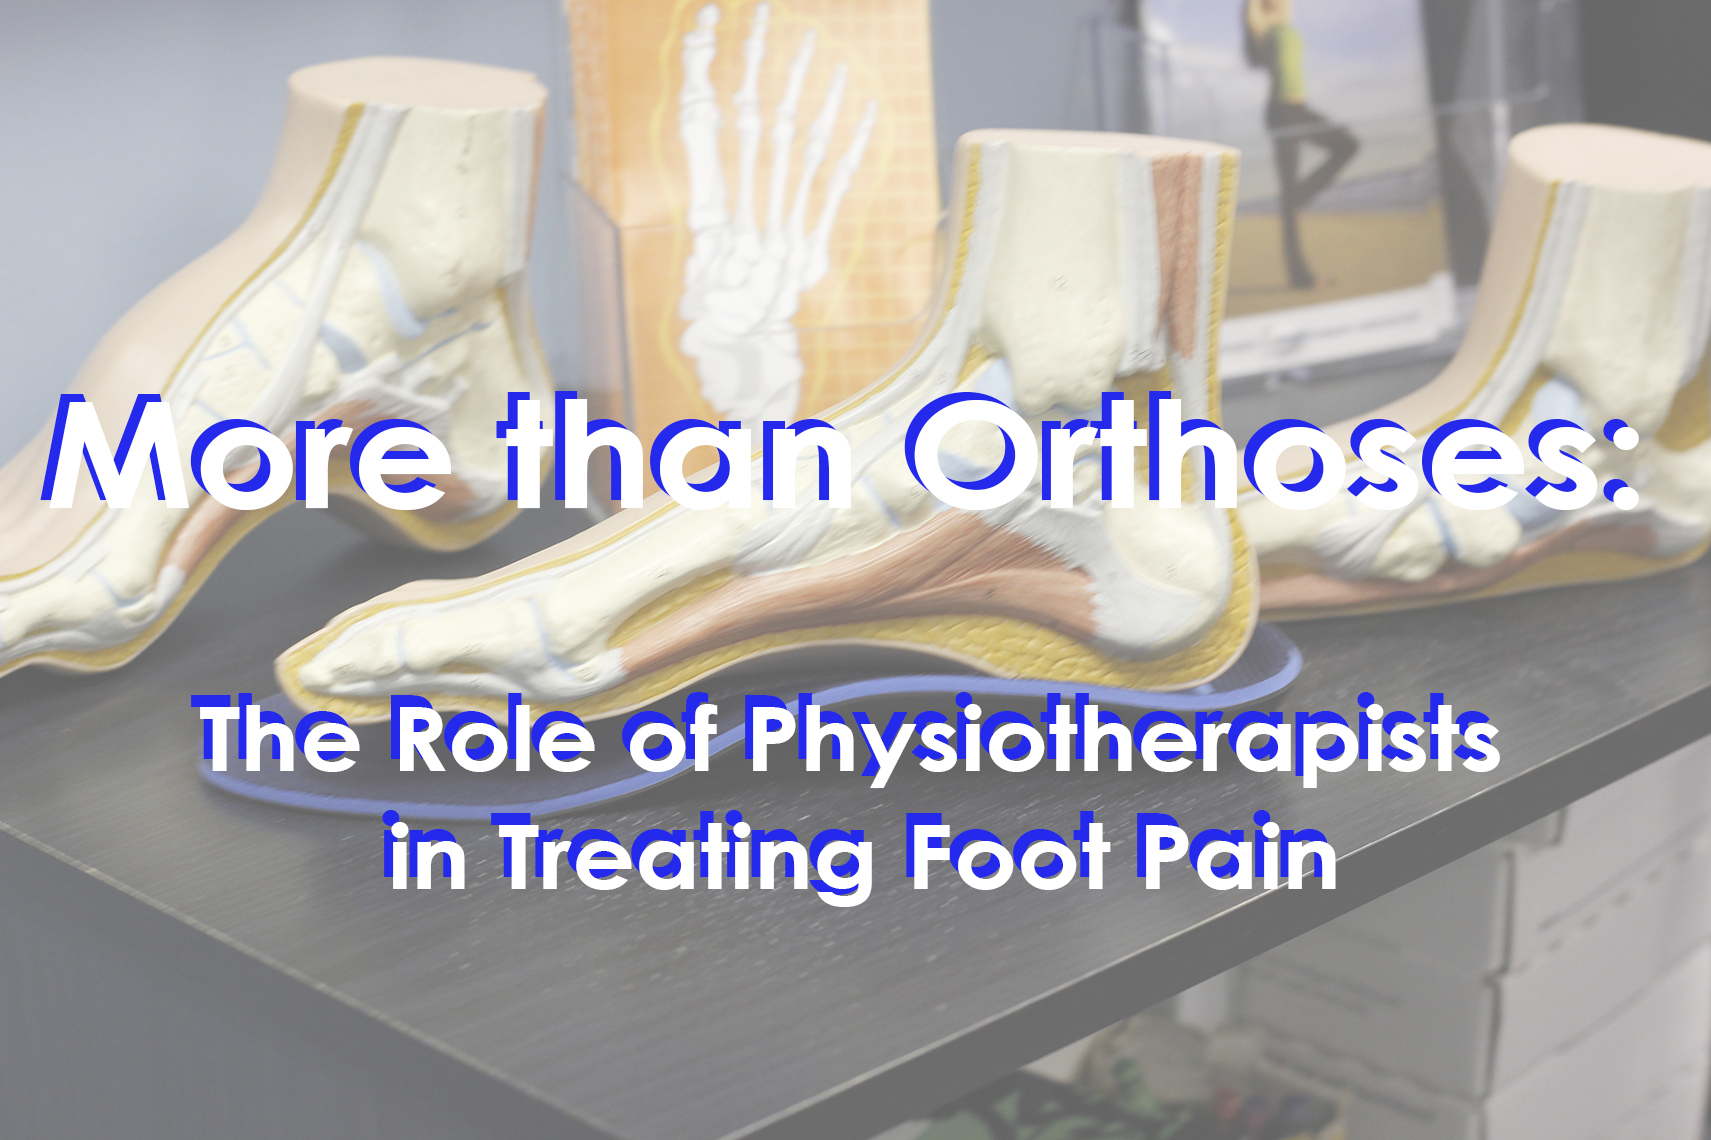 More than orthoses